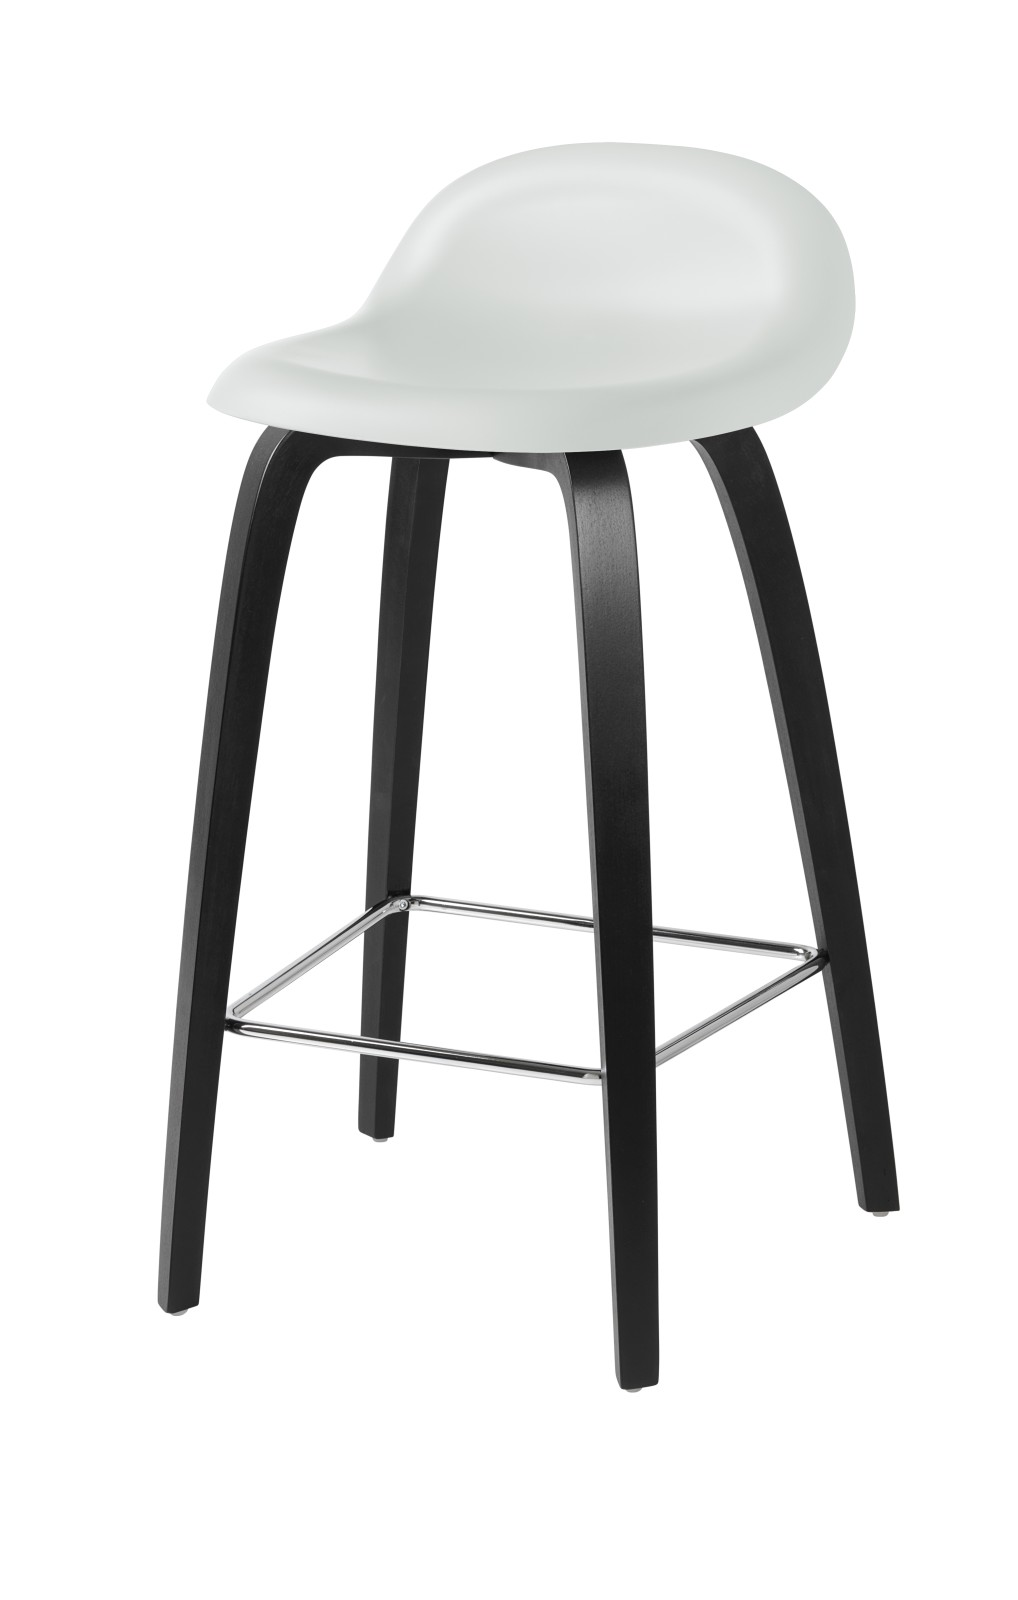 Gubi 3D Wood Base Counter Stool - Unupholstered Gubi HiRek White Cloud, Gubi Wood Black Stained Beec